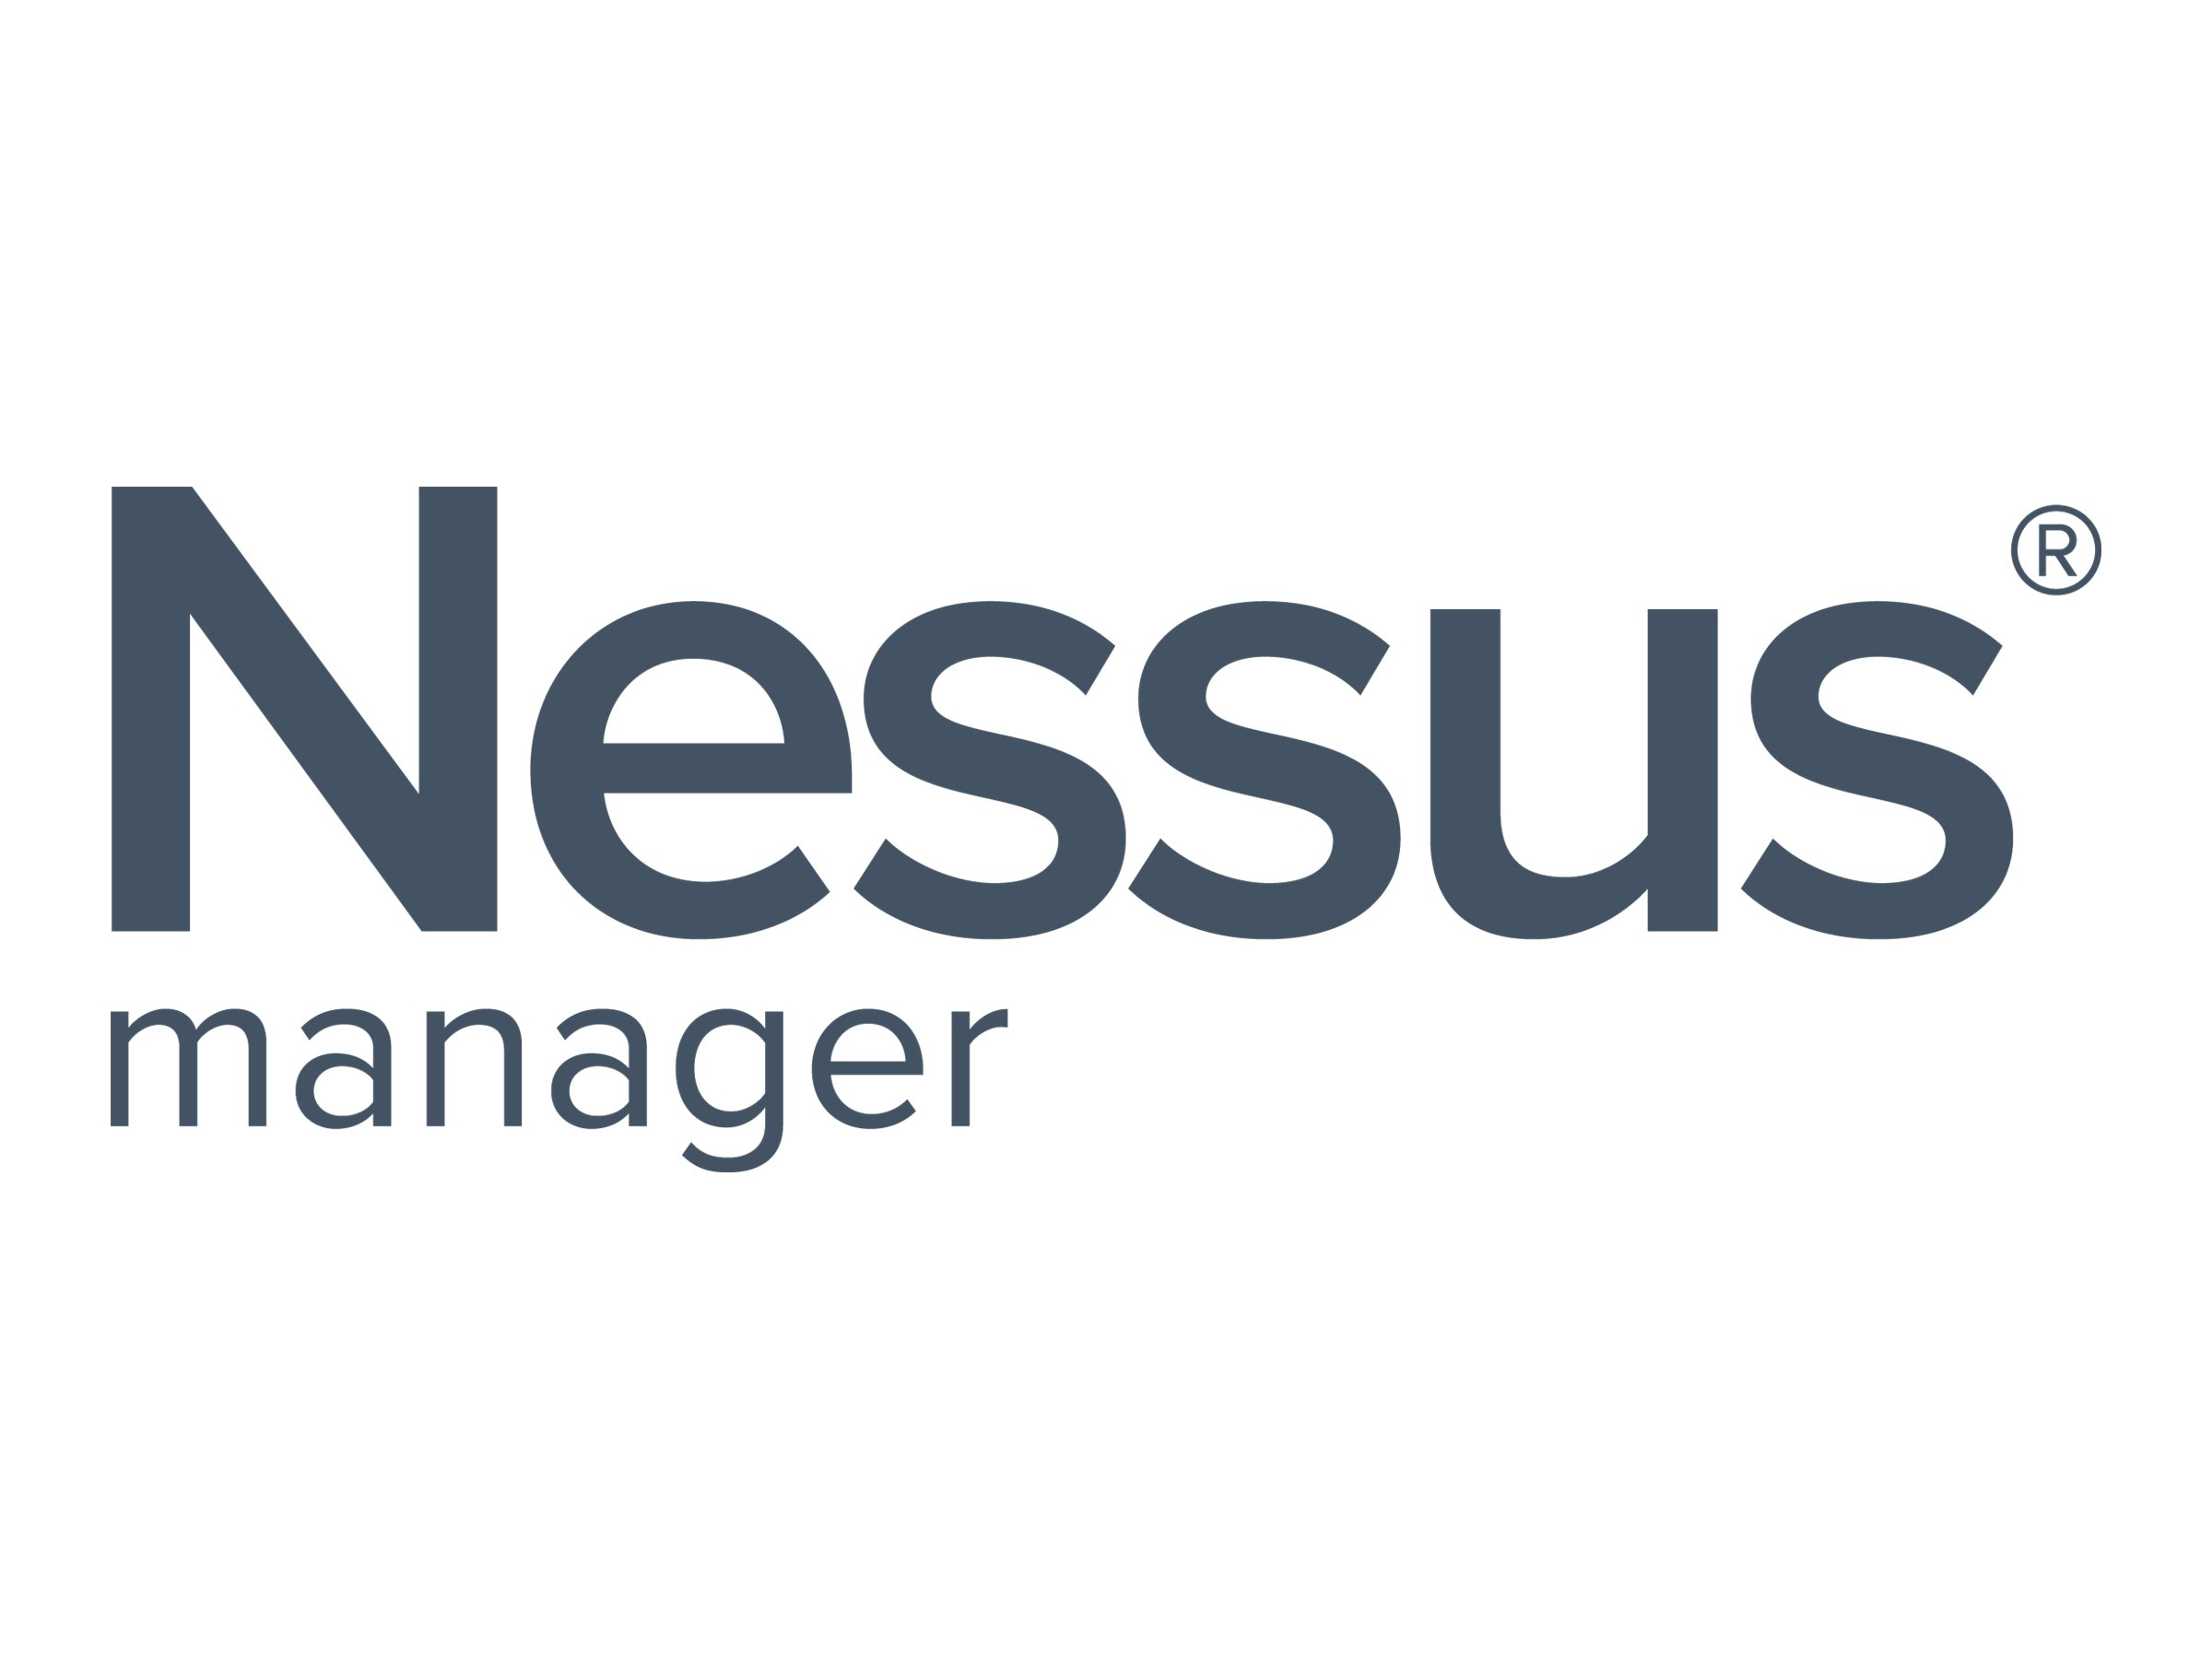 Nessus Manager - On-Premise subscription license (1 year) - 128 hosts, 1 additional scanner, 128 agents